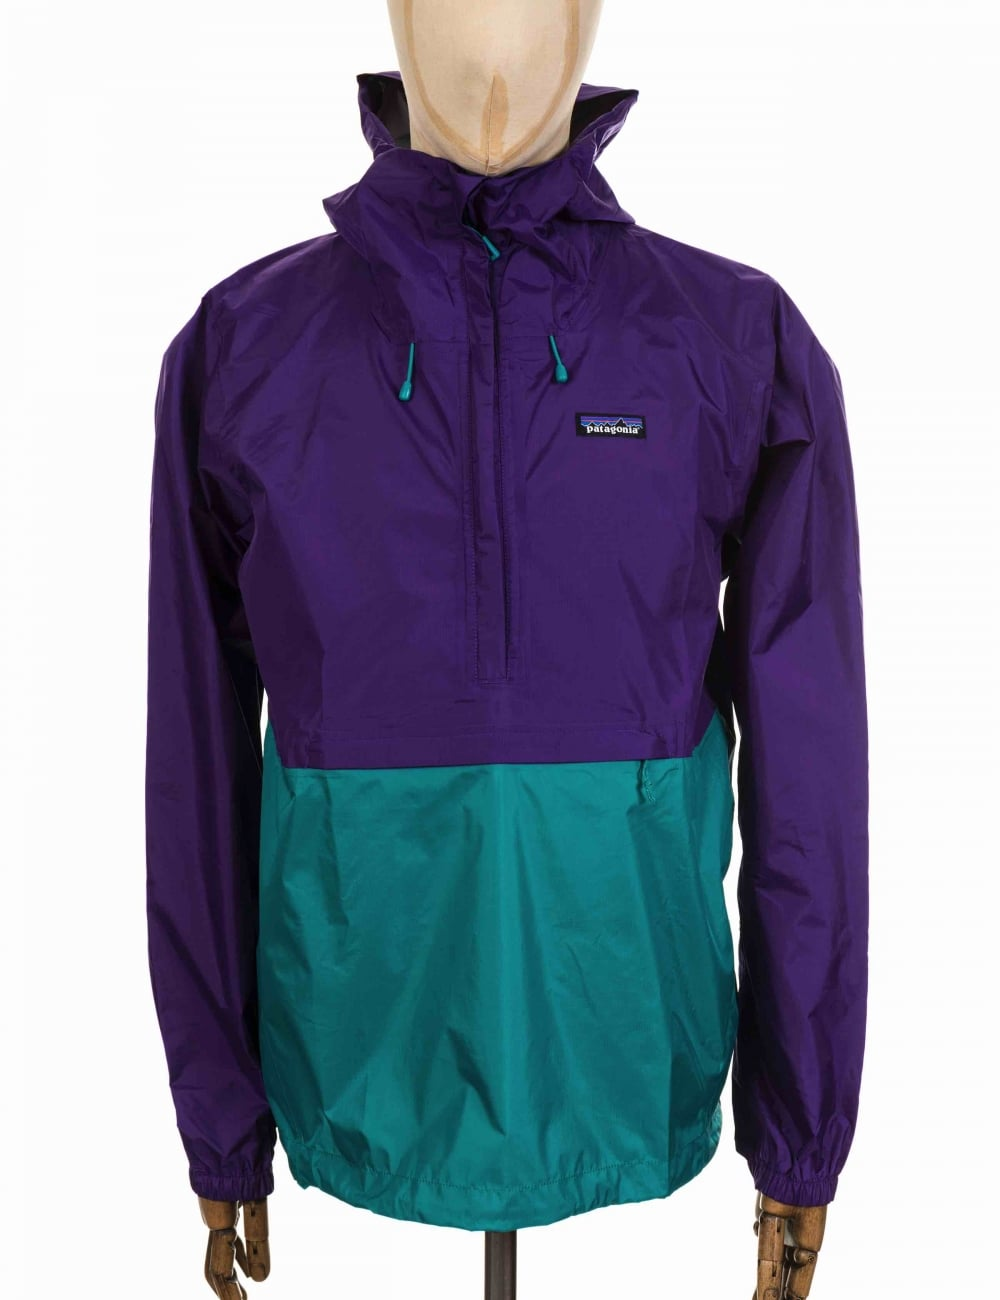 Patagonia Torrentshell Pullover Jacket - Purple - Clothing from ...